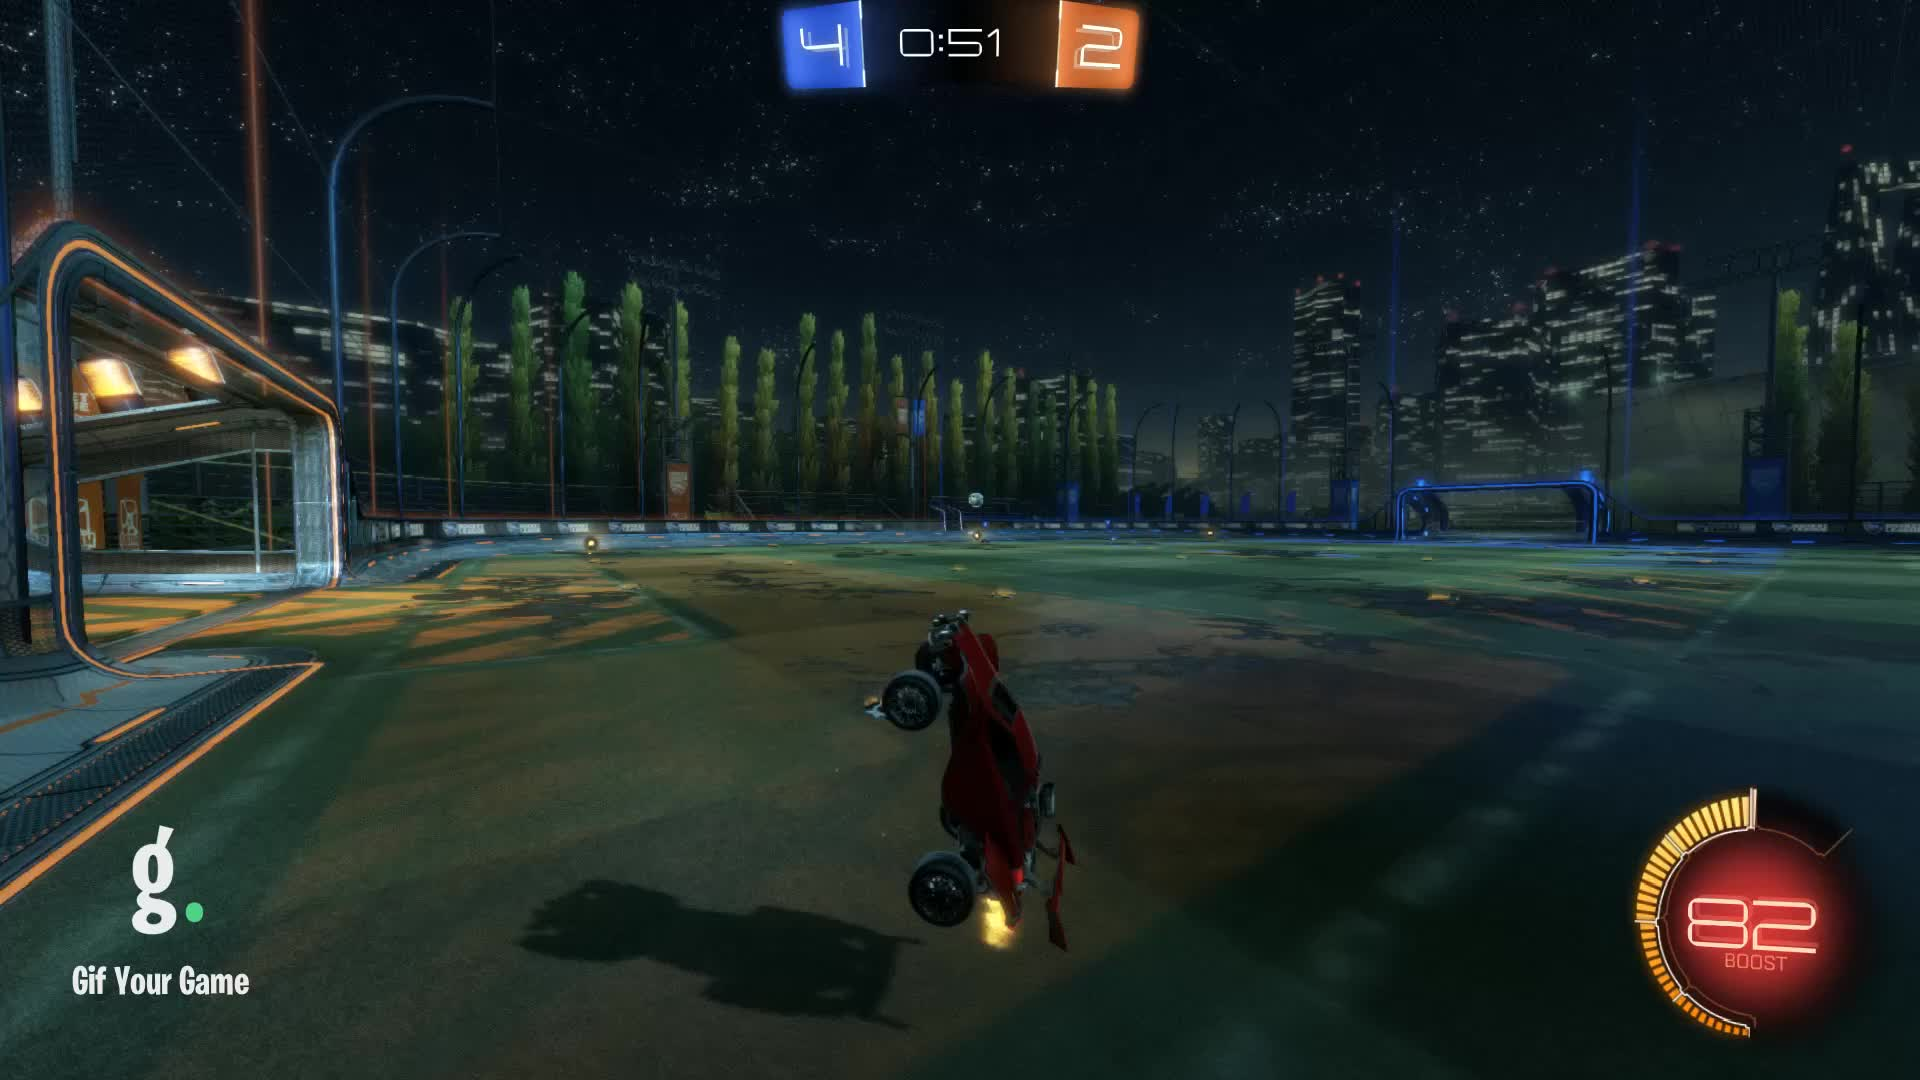 Assist, Gif Your Game, GifYourGame, Rocket League, RocketLeague, iLLixer, Assist 6: iLLixer GIFs